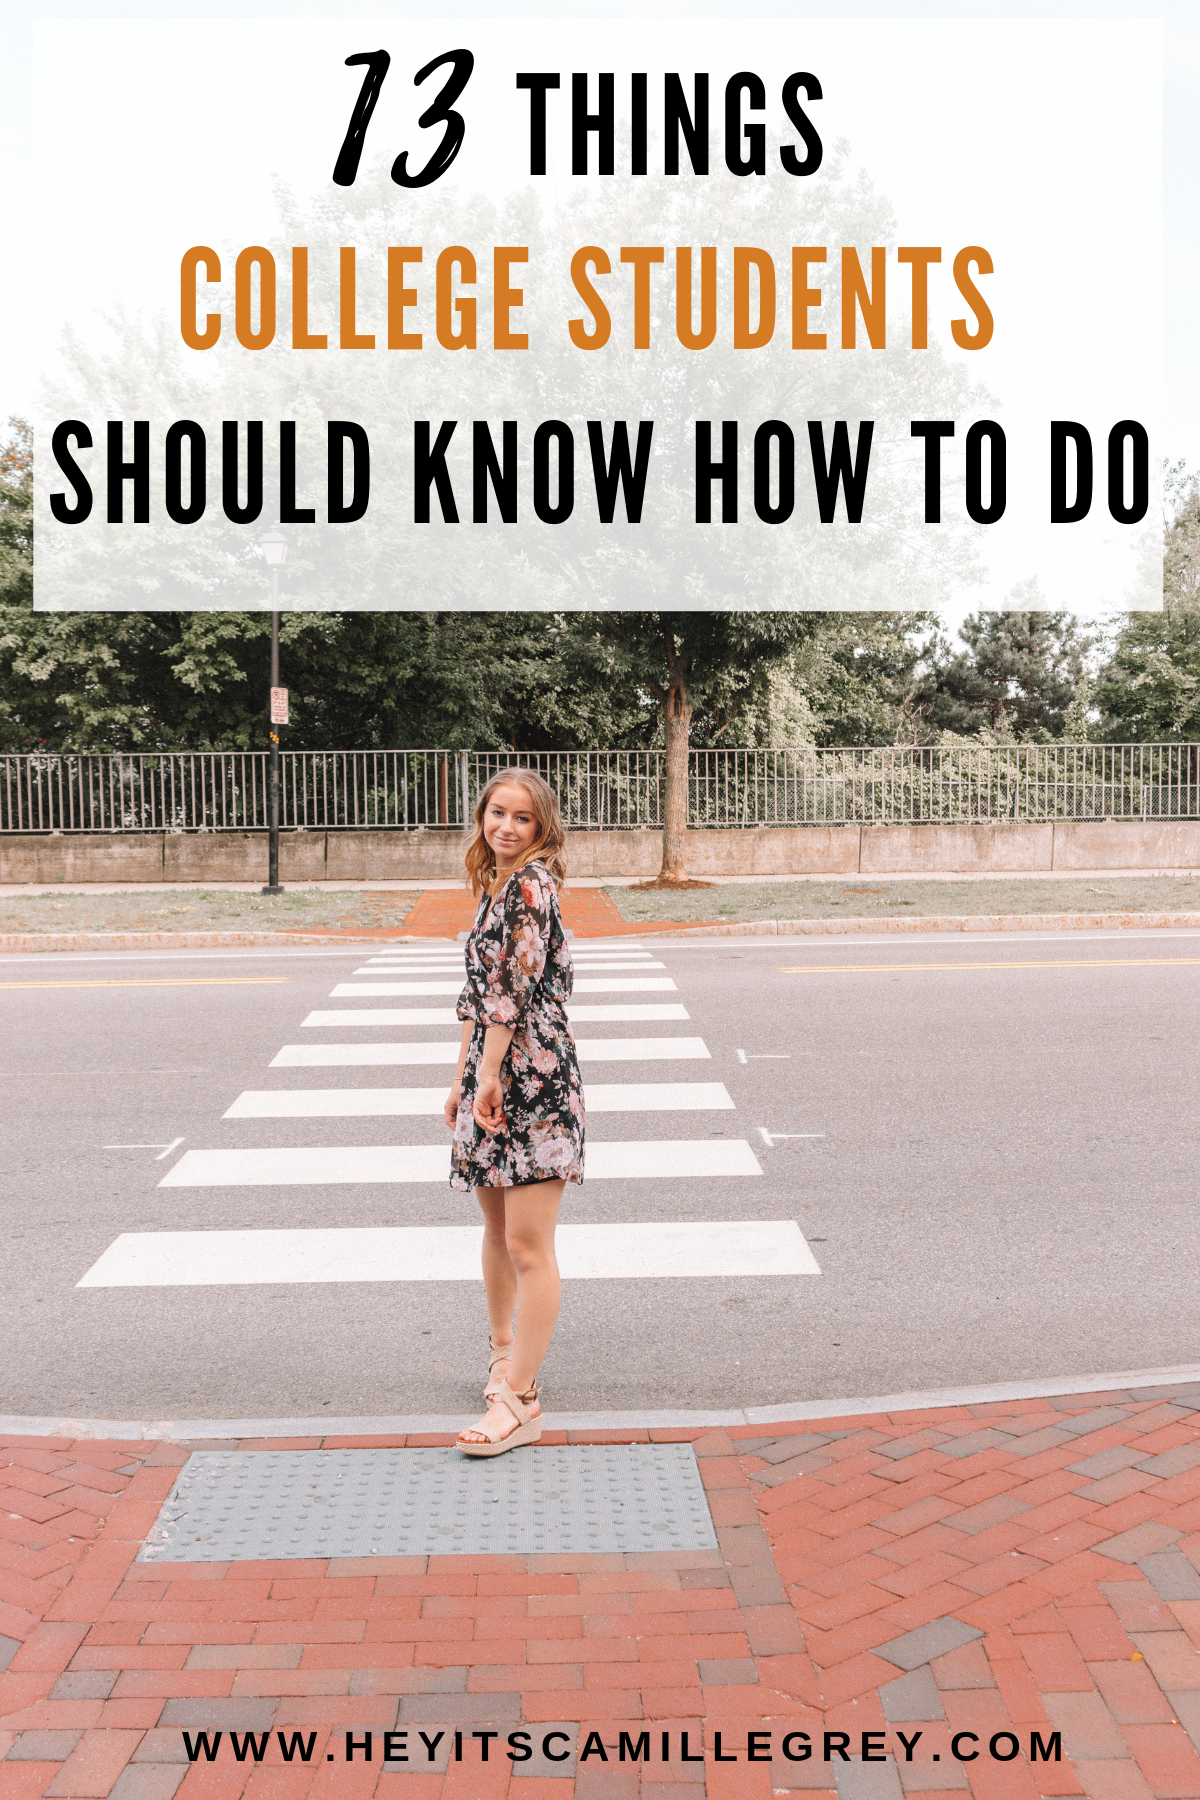 13 Things College Students Should Know How to Do | Hey Its Camille Grey #college #dormlife #students #collegestudent